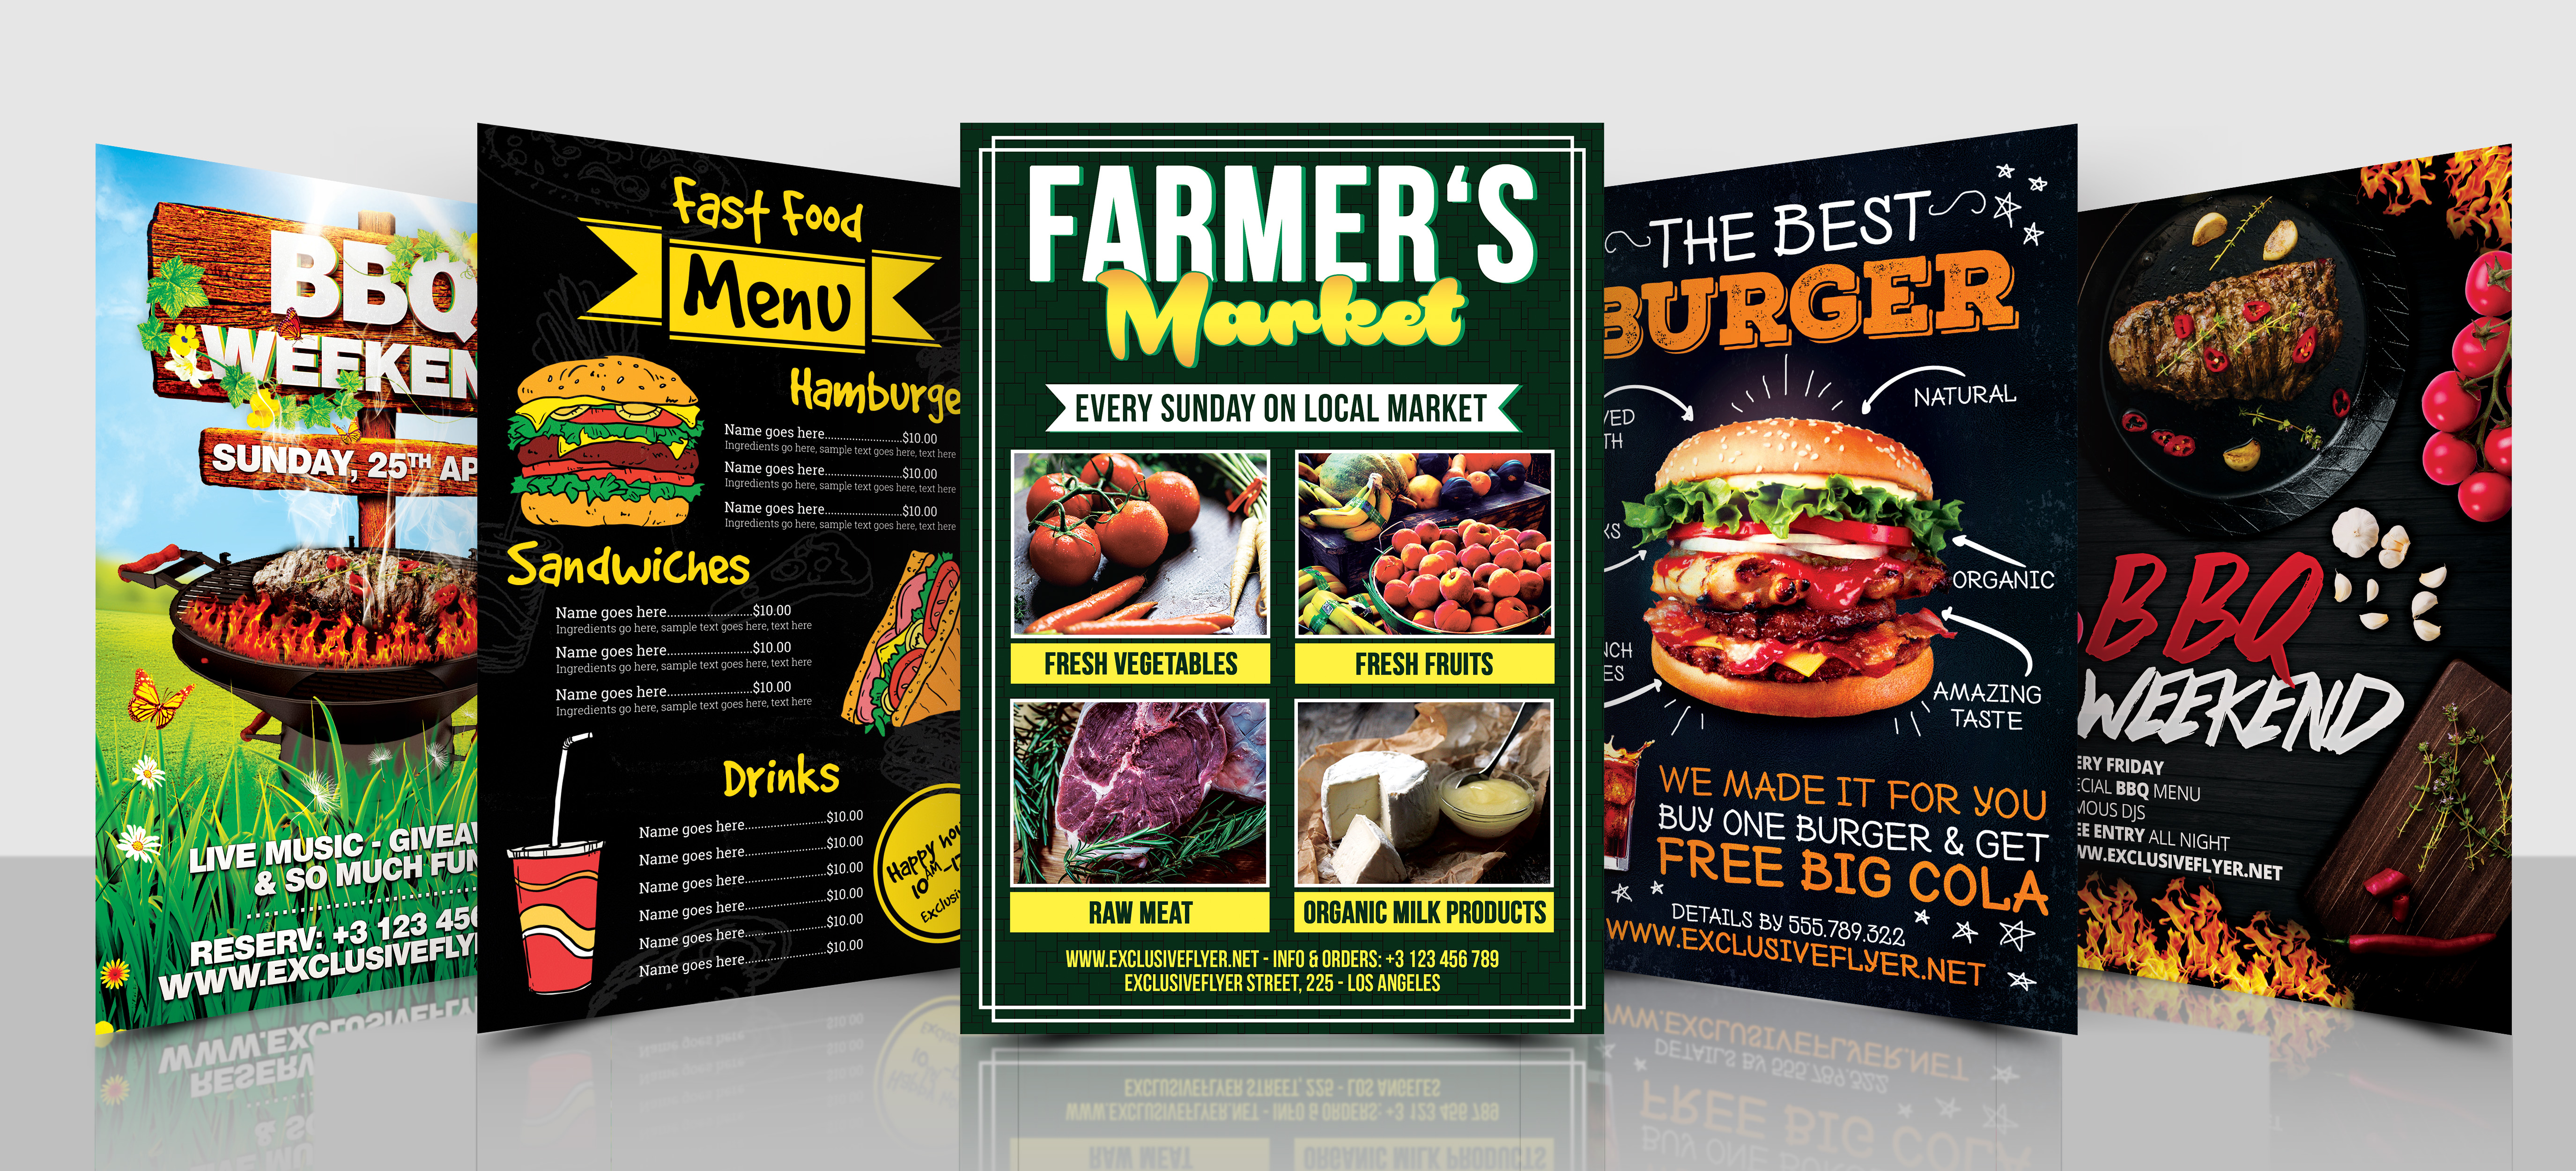 I Will Design An Amazing Flyer,  Food Menu Any Kind Of Service Menu for you